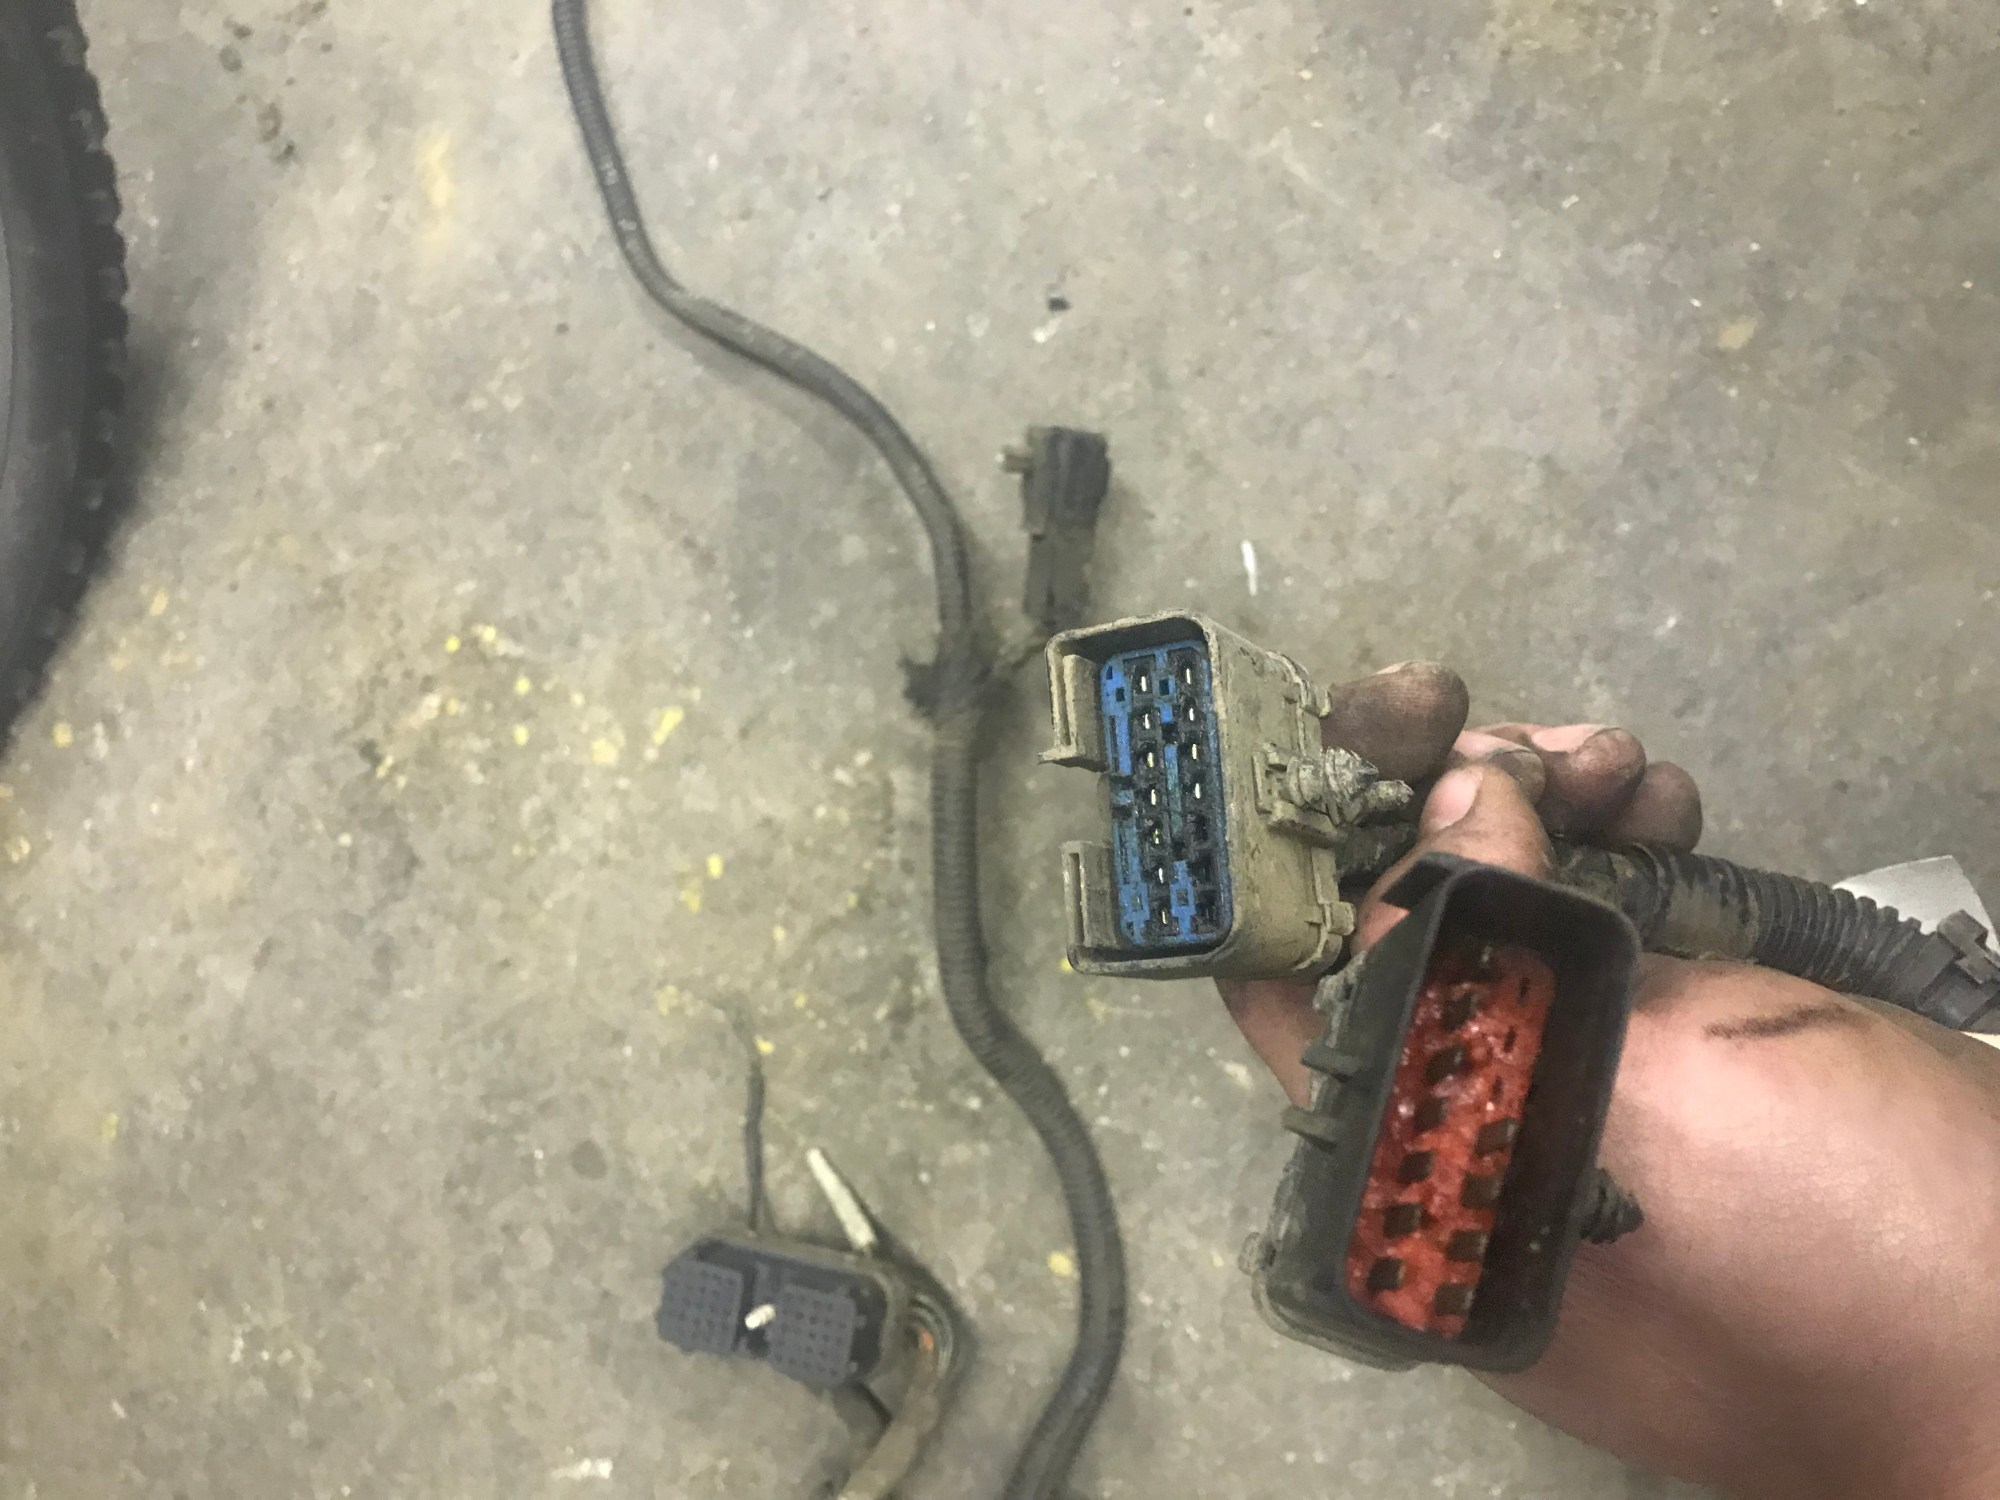 hight resolution of 2003 dodge ram 2500 3500 5 9l cummins engine wiring harness as130062003 dodge ram 2500 3500